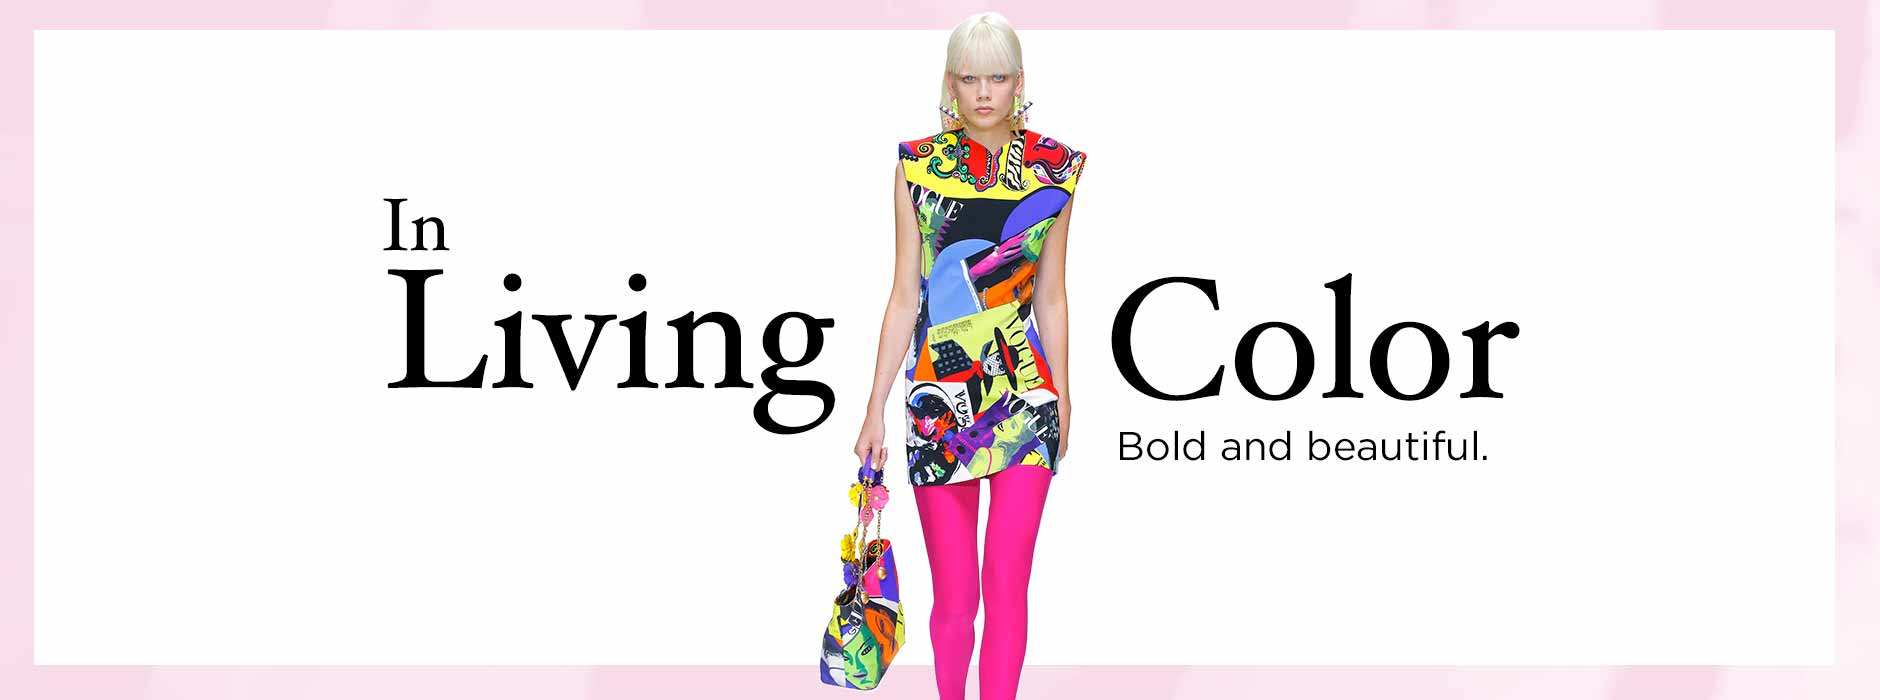 Spring Collections - Trend: In Living Color